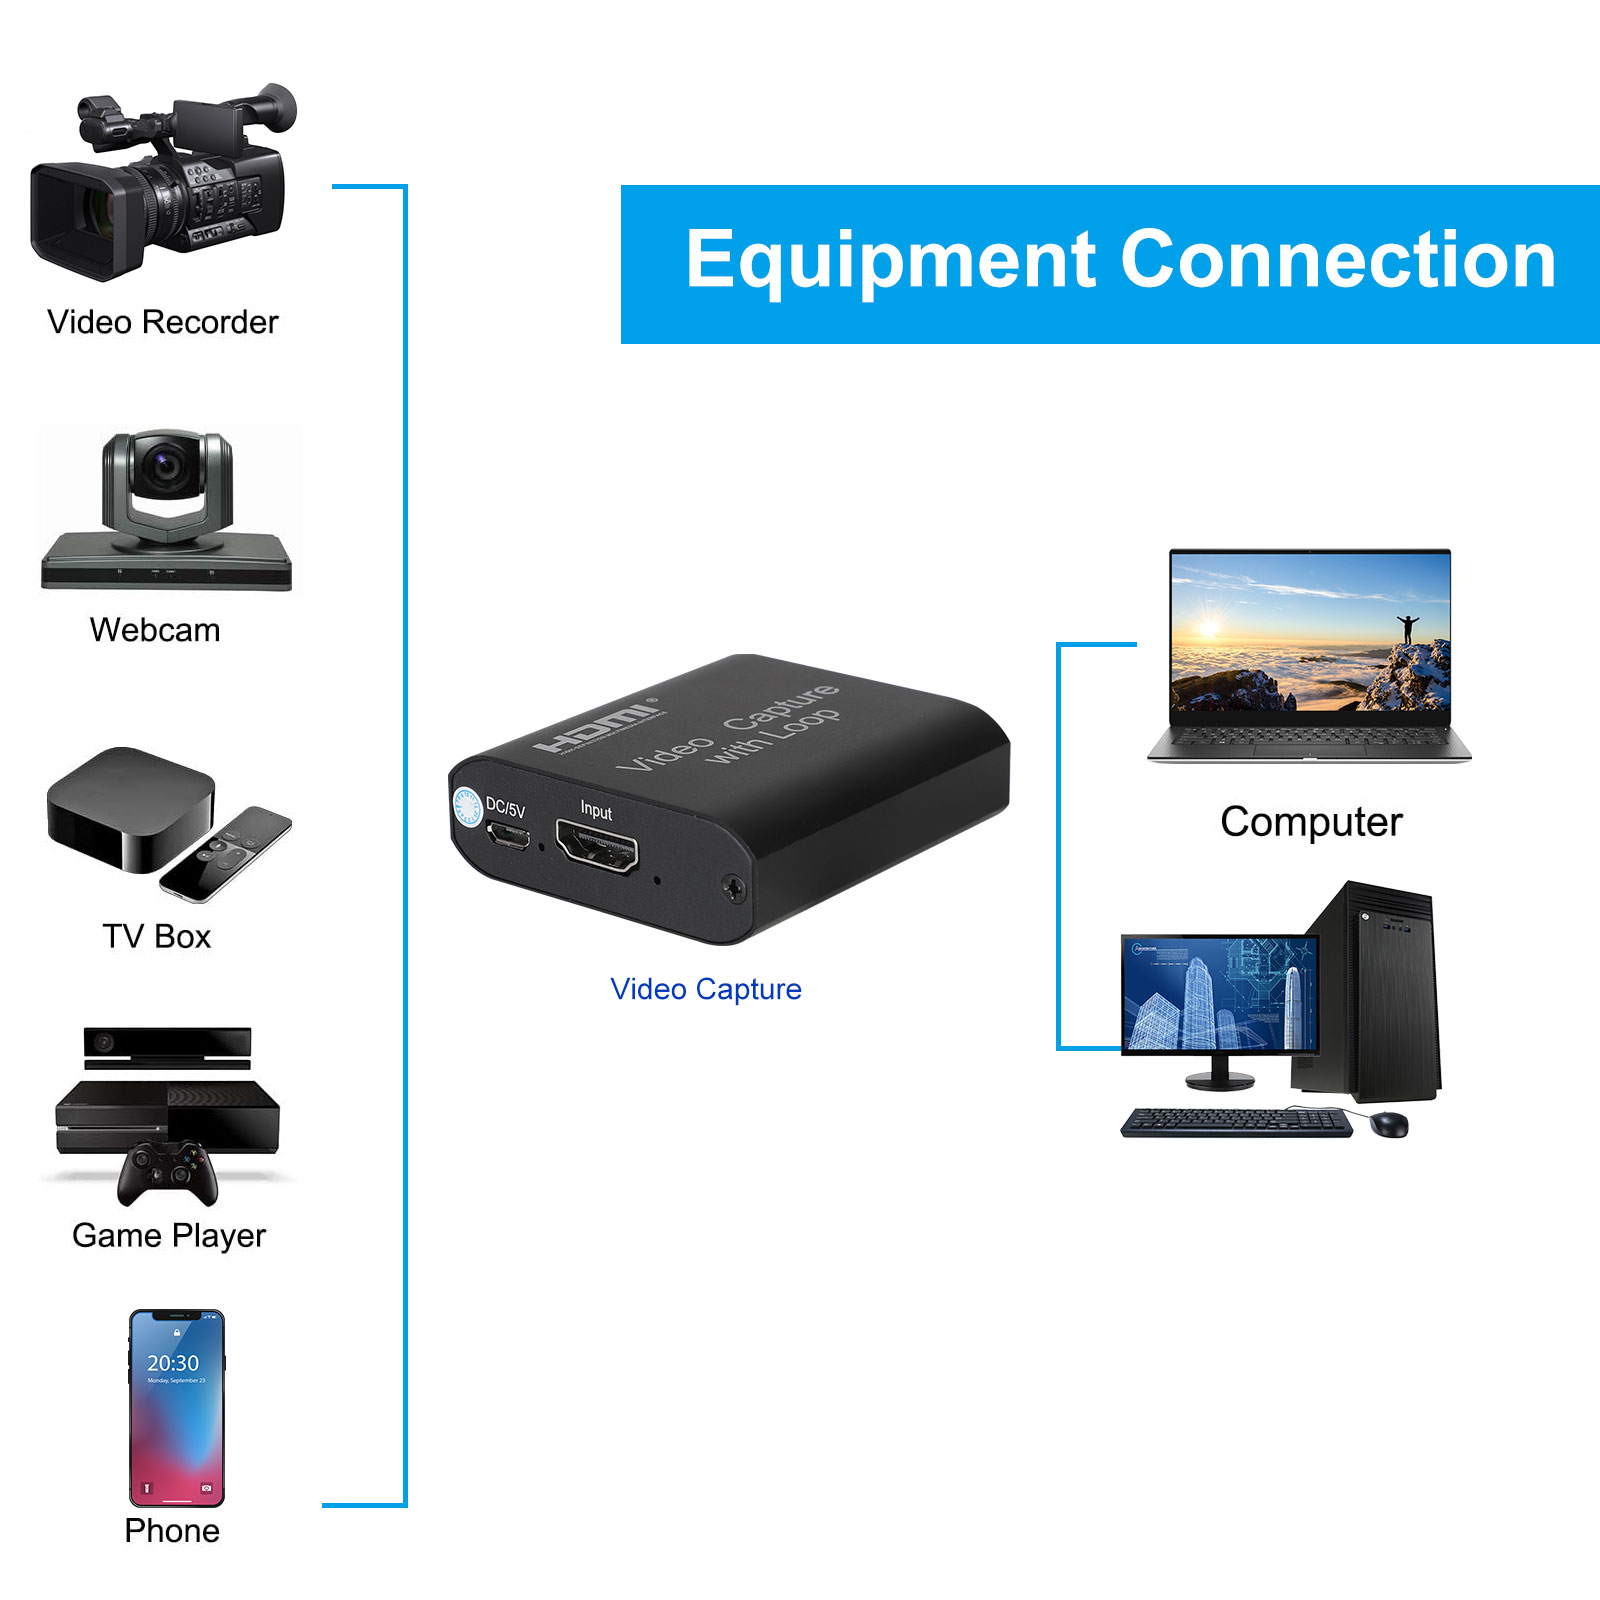 1080p-60fps-HDMI-Video-Digtal-Capture-Card-Recorder-for-Streaming-Meeting-Game thumbnail 2